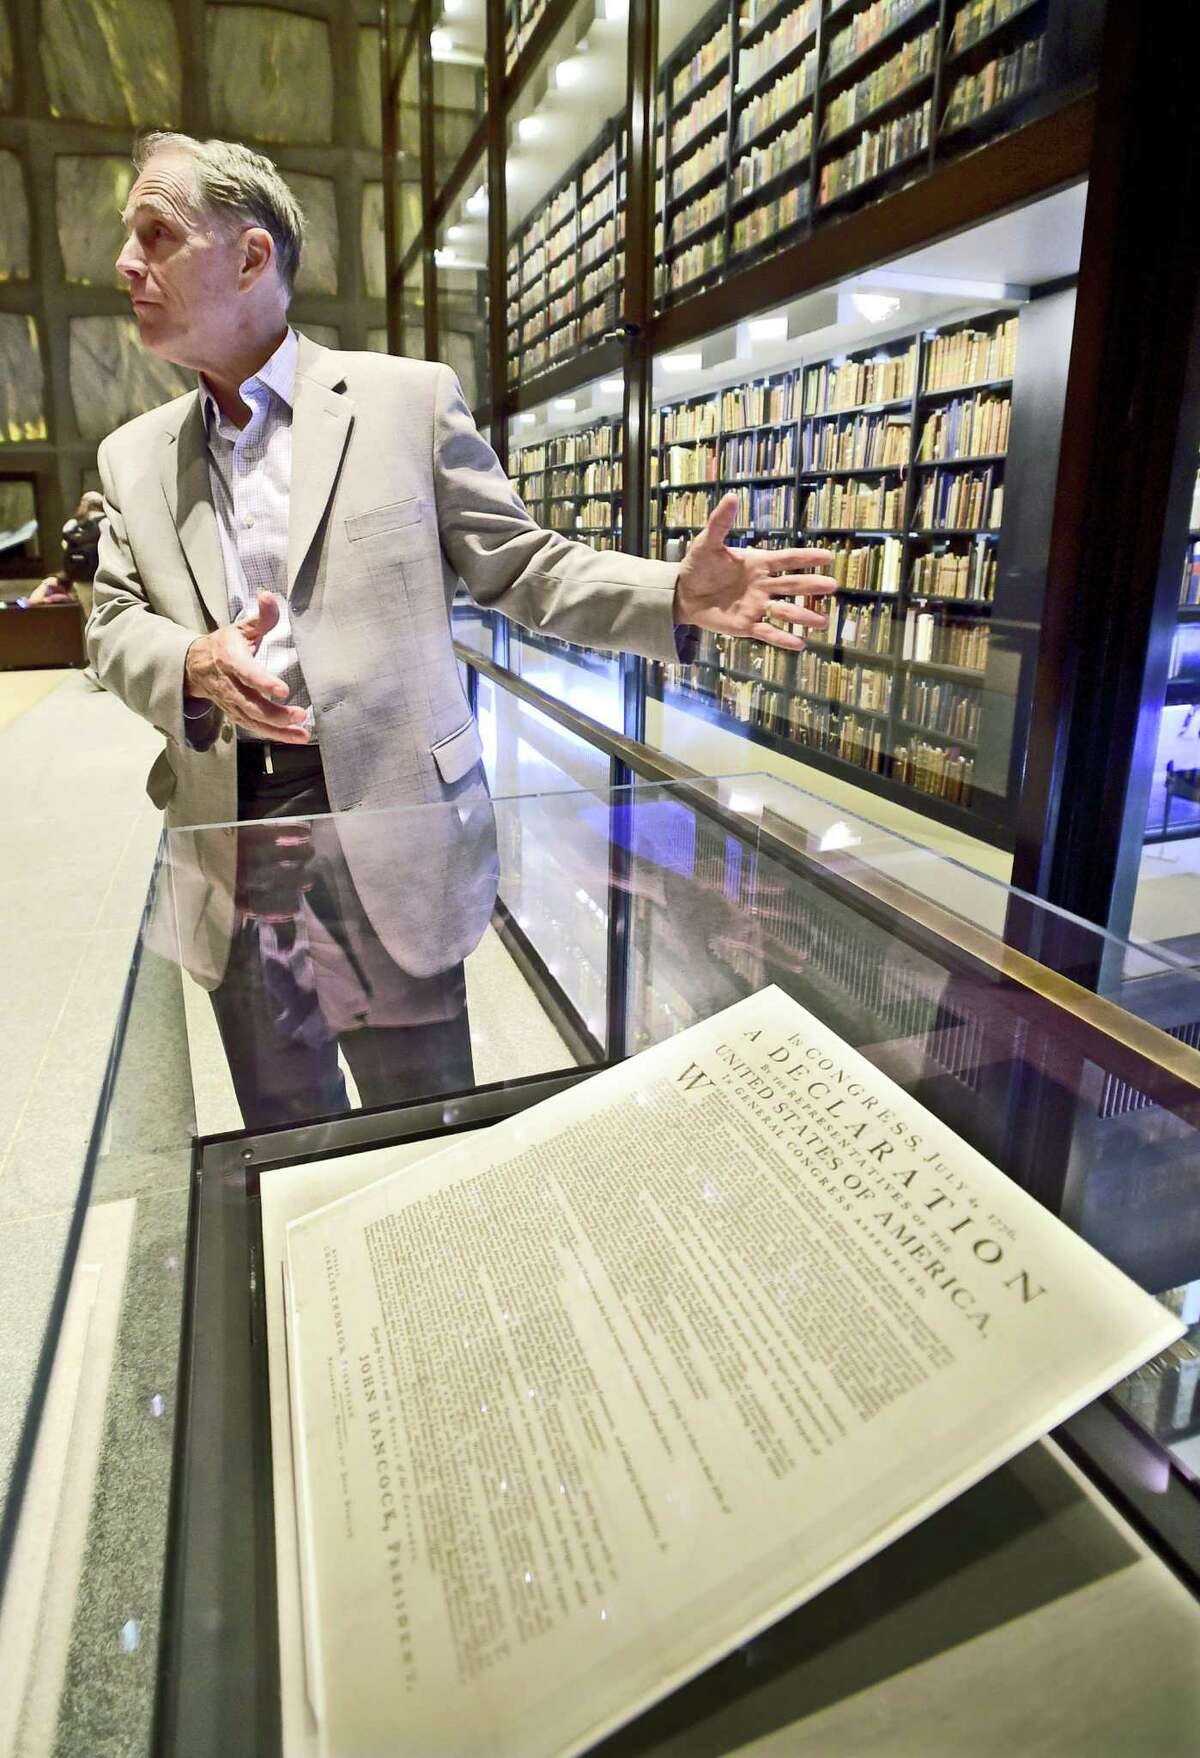 (Peter Hvizdak / Hearst Connecticut Media) New Haven, Connecticut: June 28, 2017. George Miles, the William Robertson Coe Curator of Yale Collections of Western Americana at the Beinecke Rare Book & Manuscript Library at Yale University in New Haven with a first printed issue of the Declaration of Independence by John Dunlap in Philadelphia on July 4, 1776 at the library.